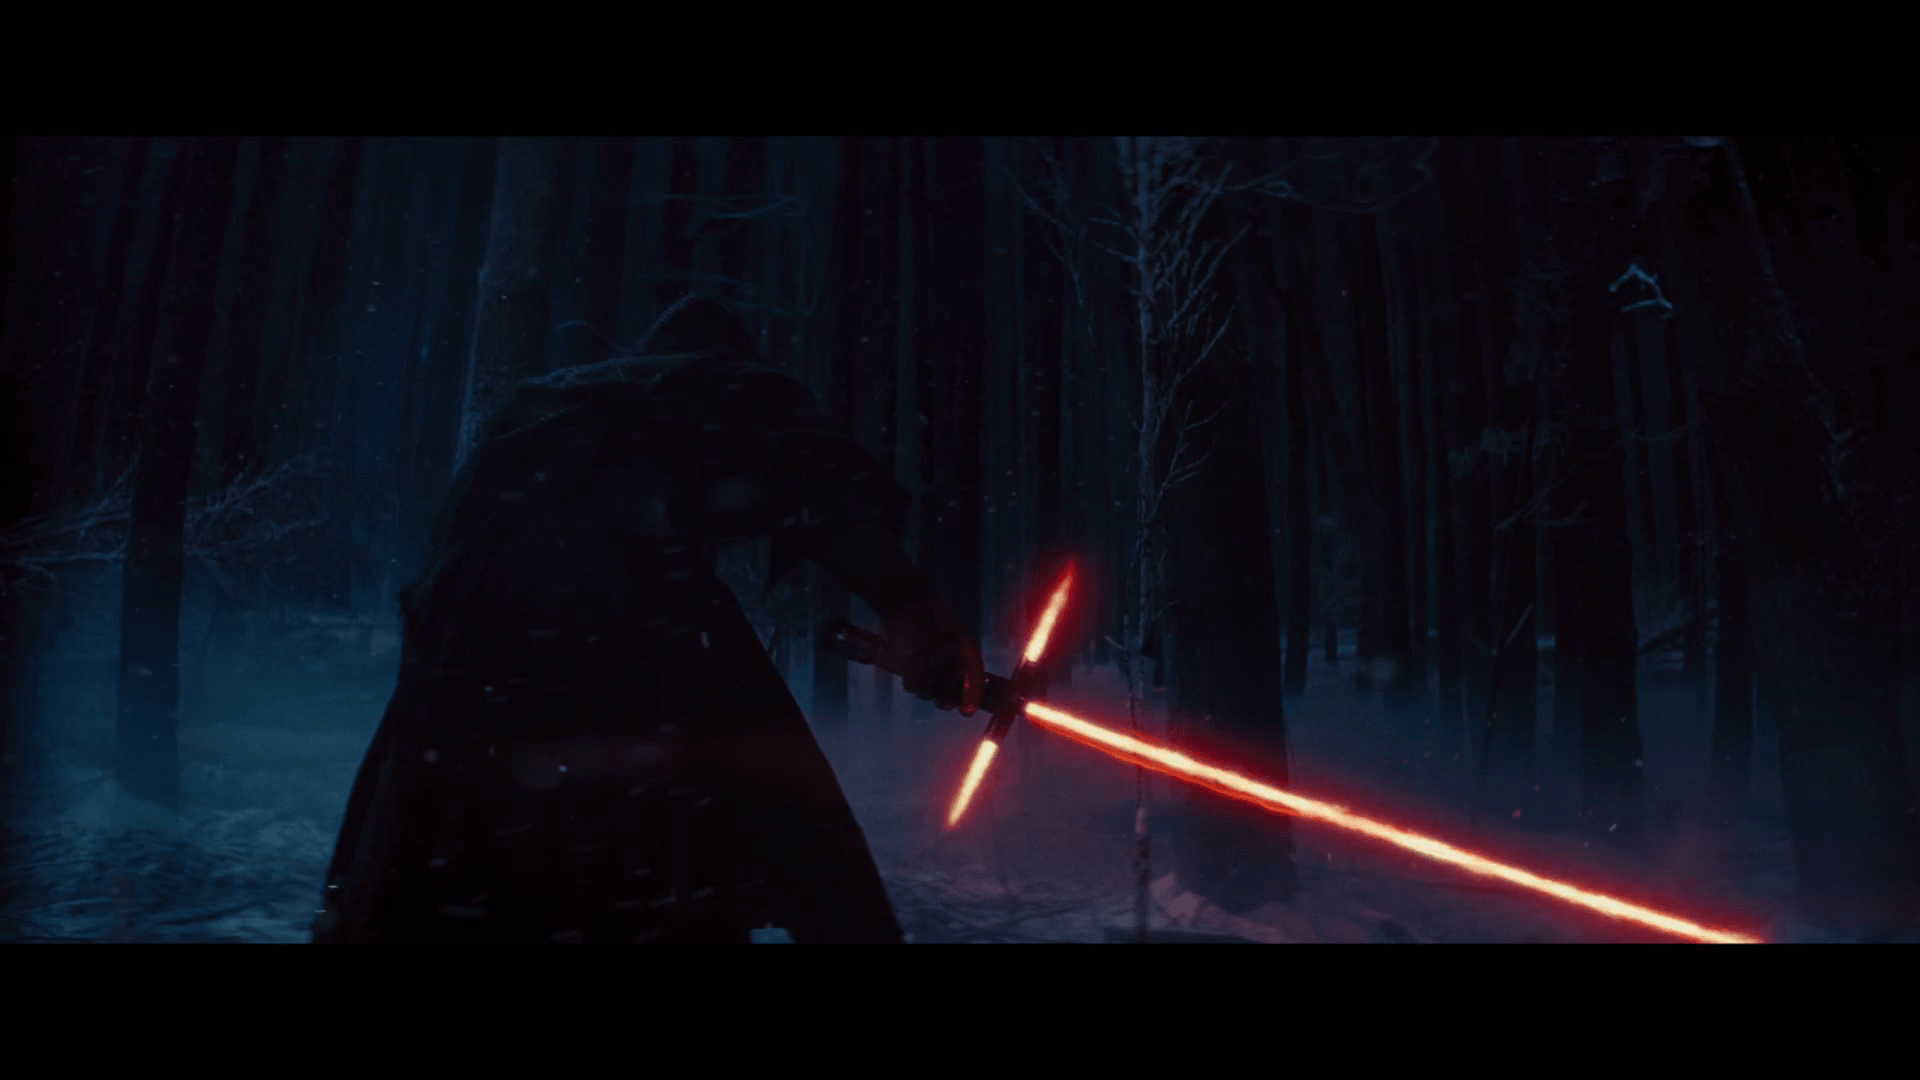 Star Wars The Force Awakens Official Teaser HD Walls Find 1920x1080